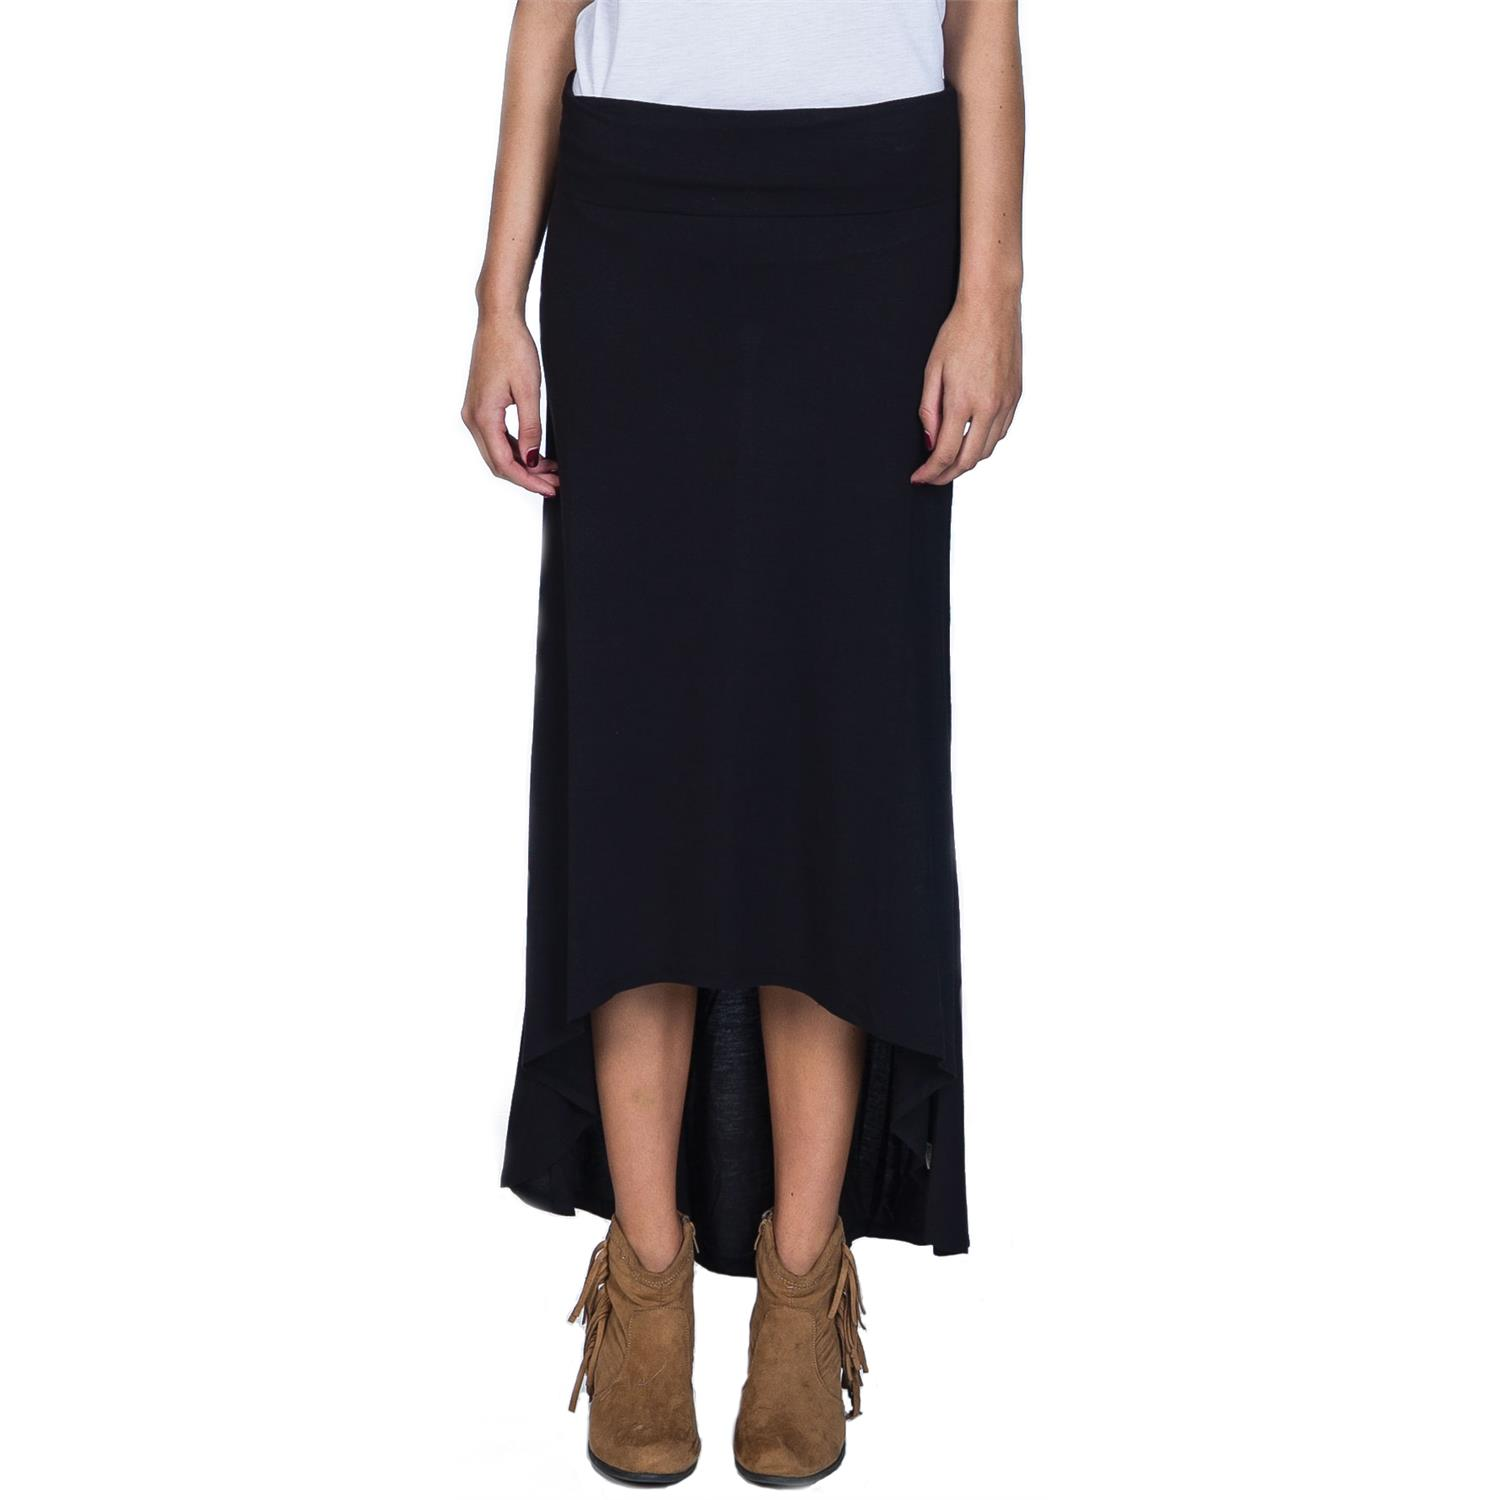 billabong skirt away maxi skirt or dress s evo